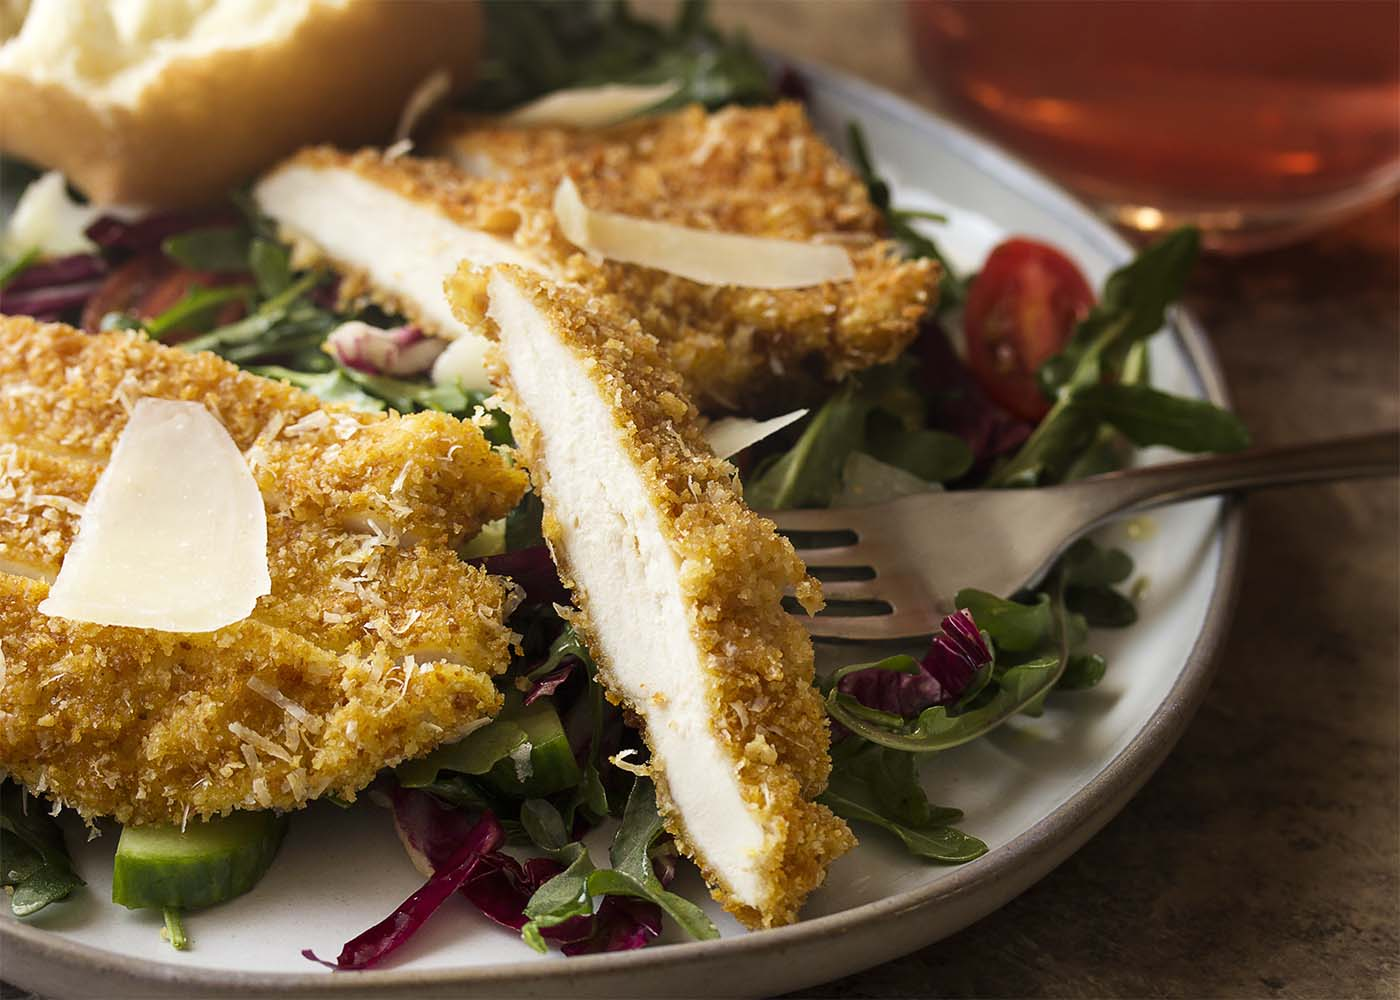 Close up of a slice of crispy breaded chicken breast on a plate with salad.